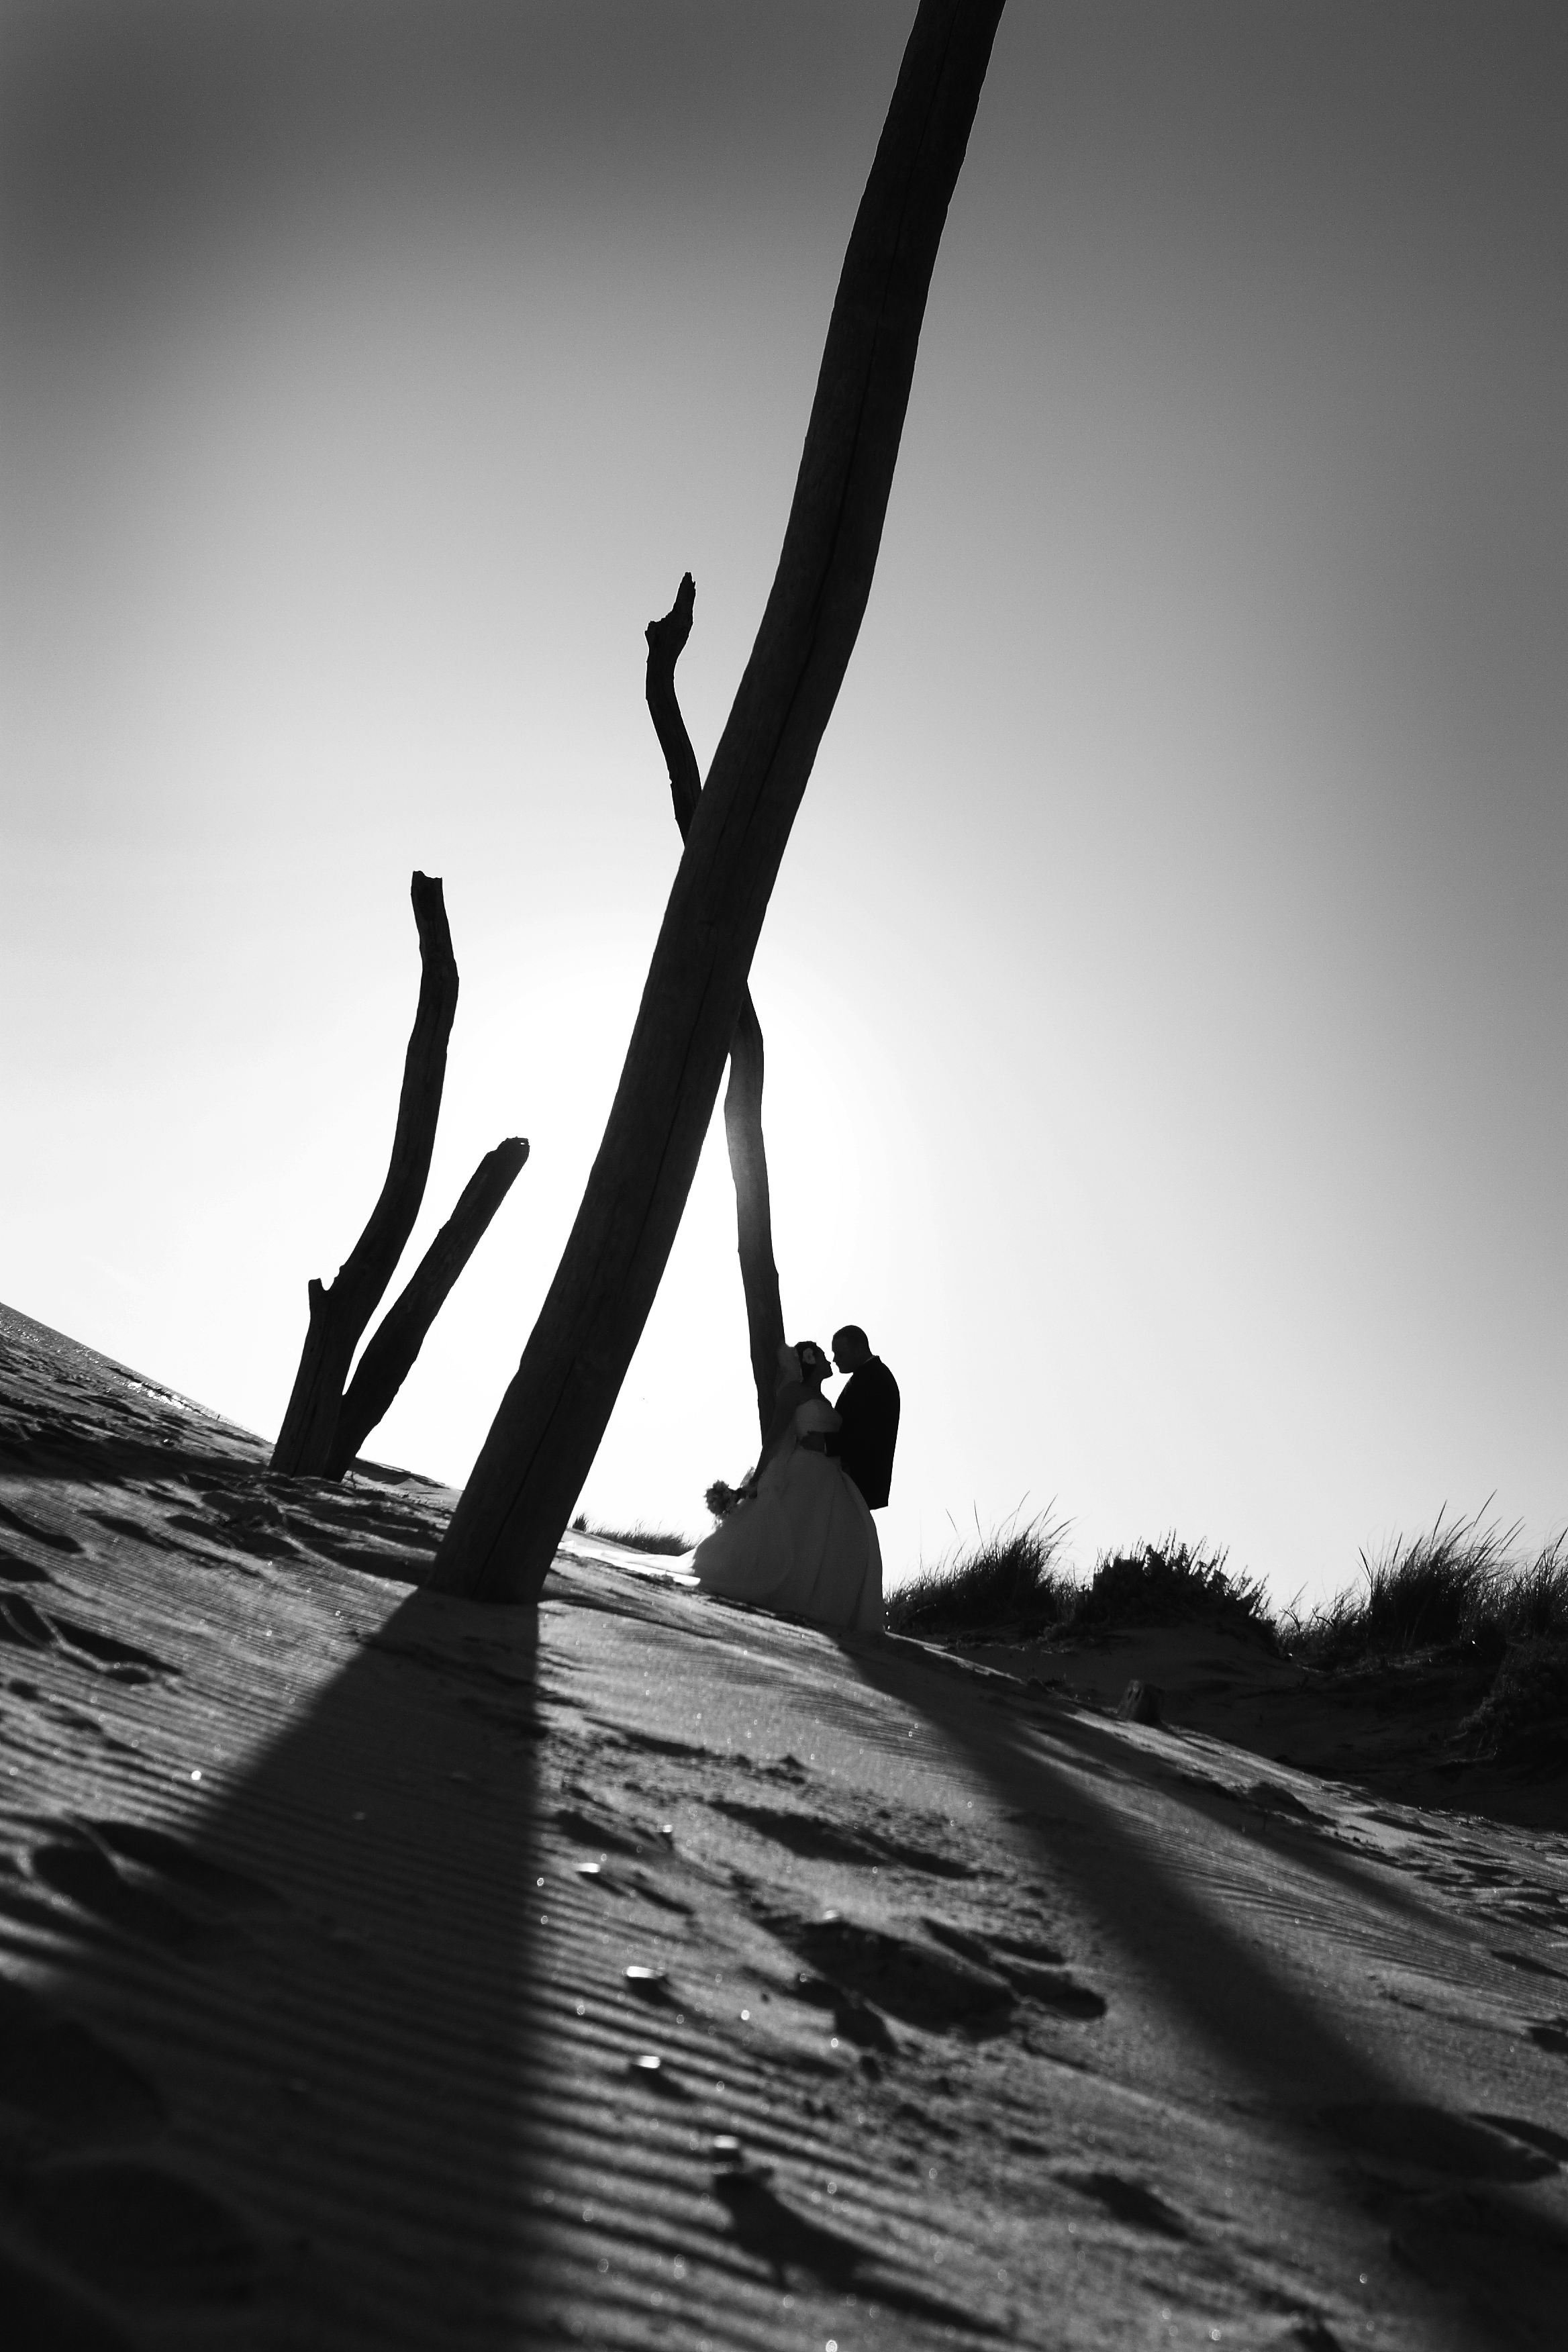 white, black, Beach, Of, And, Couple, By, A, On, Print, Standing, Driftwood